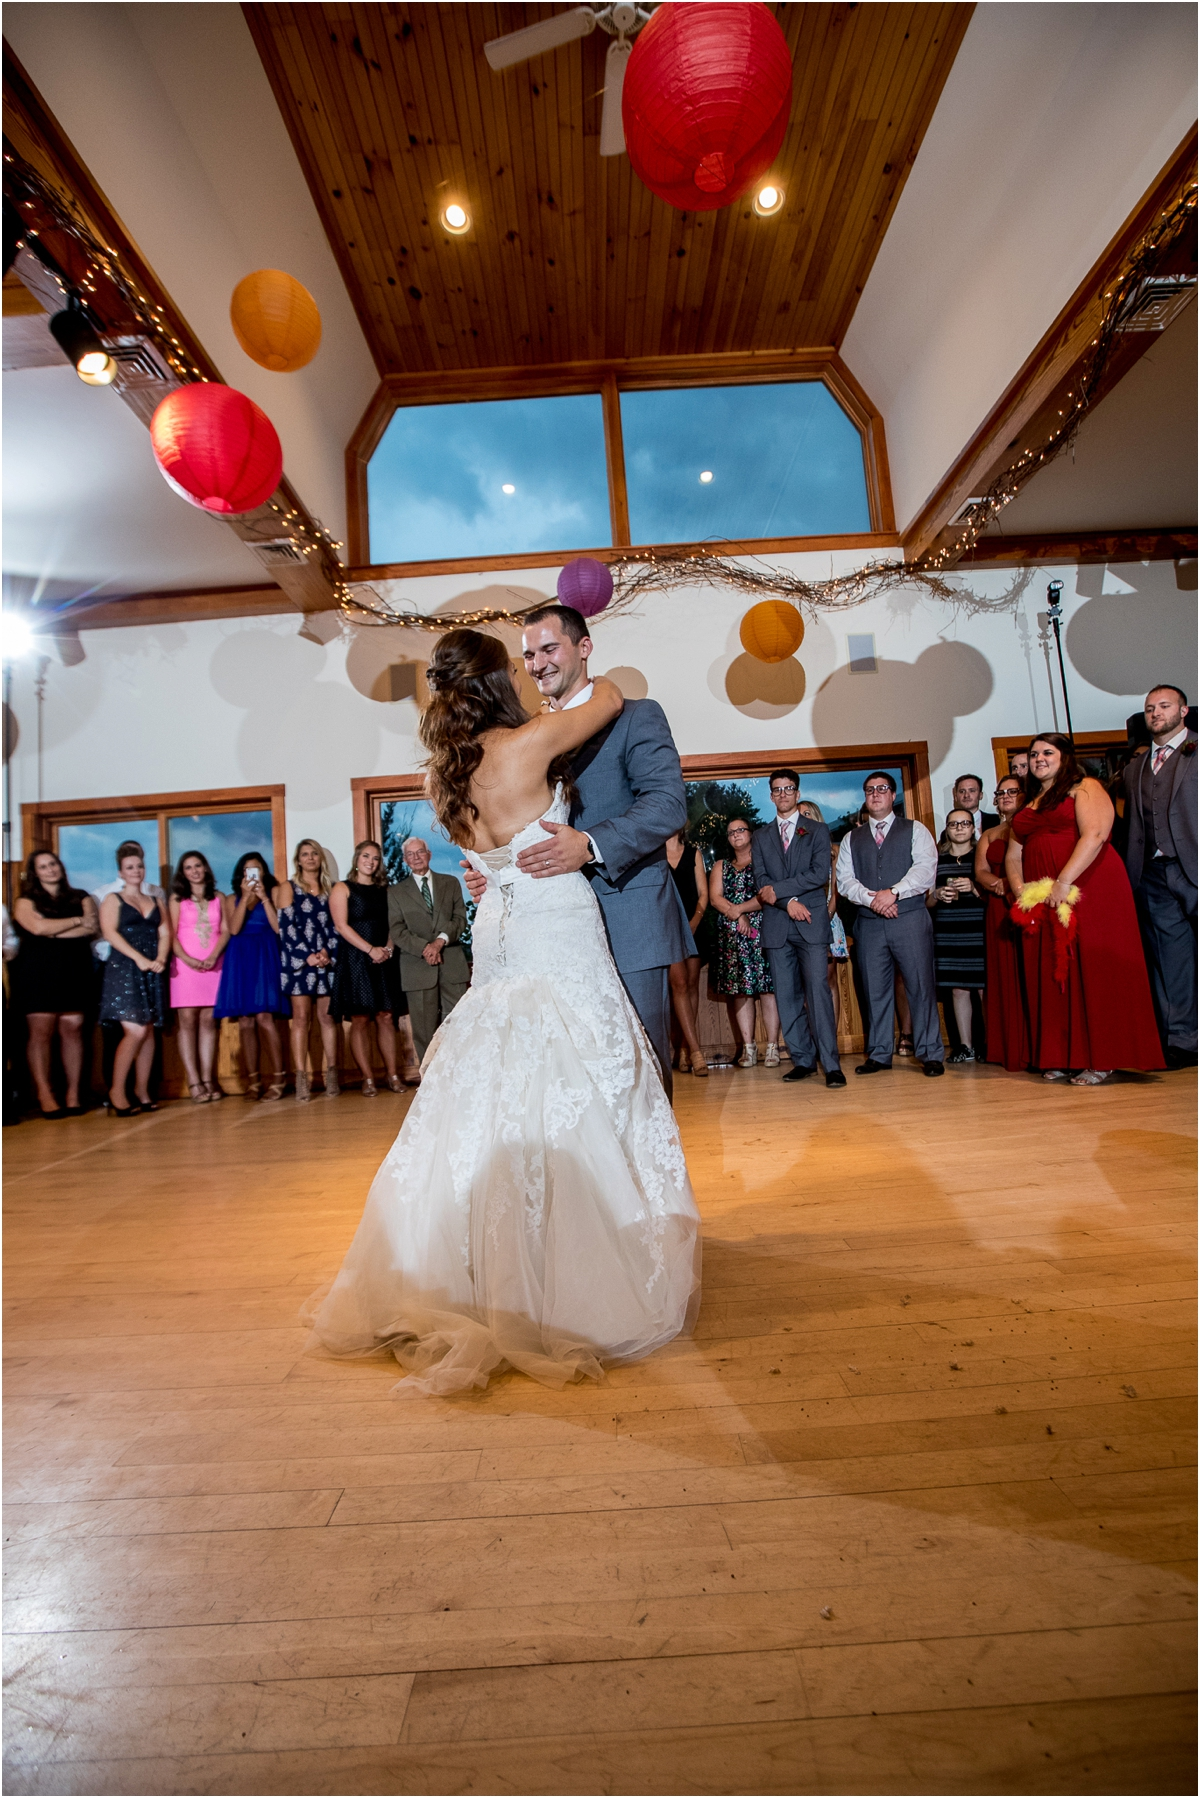 Wedding-at-Alysons-Orchard-Four-Wings-Photography_0109.jpg